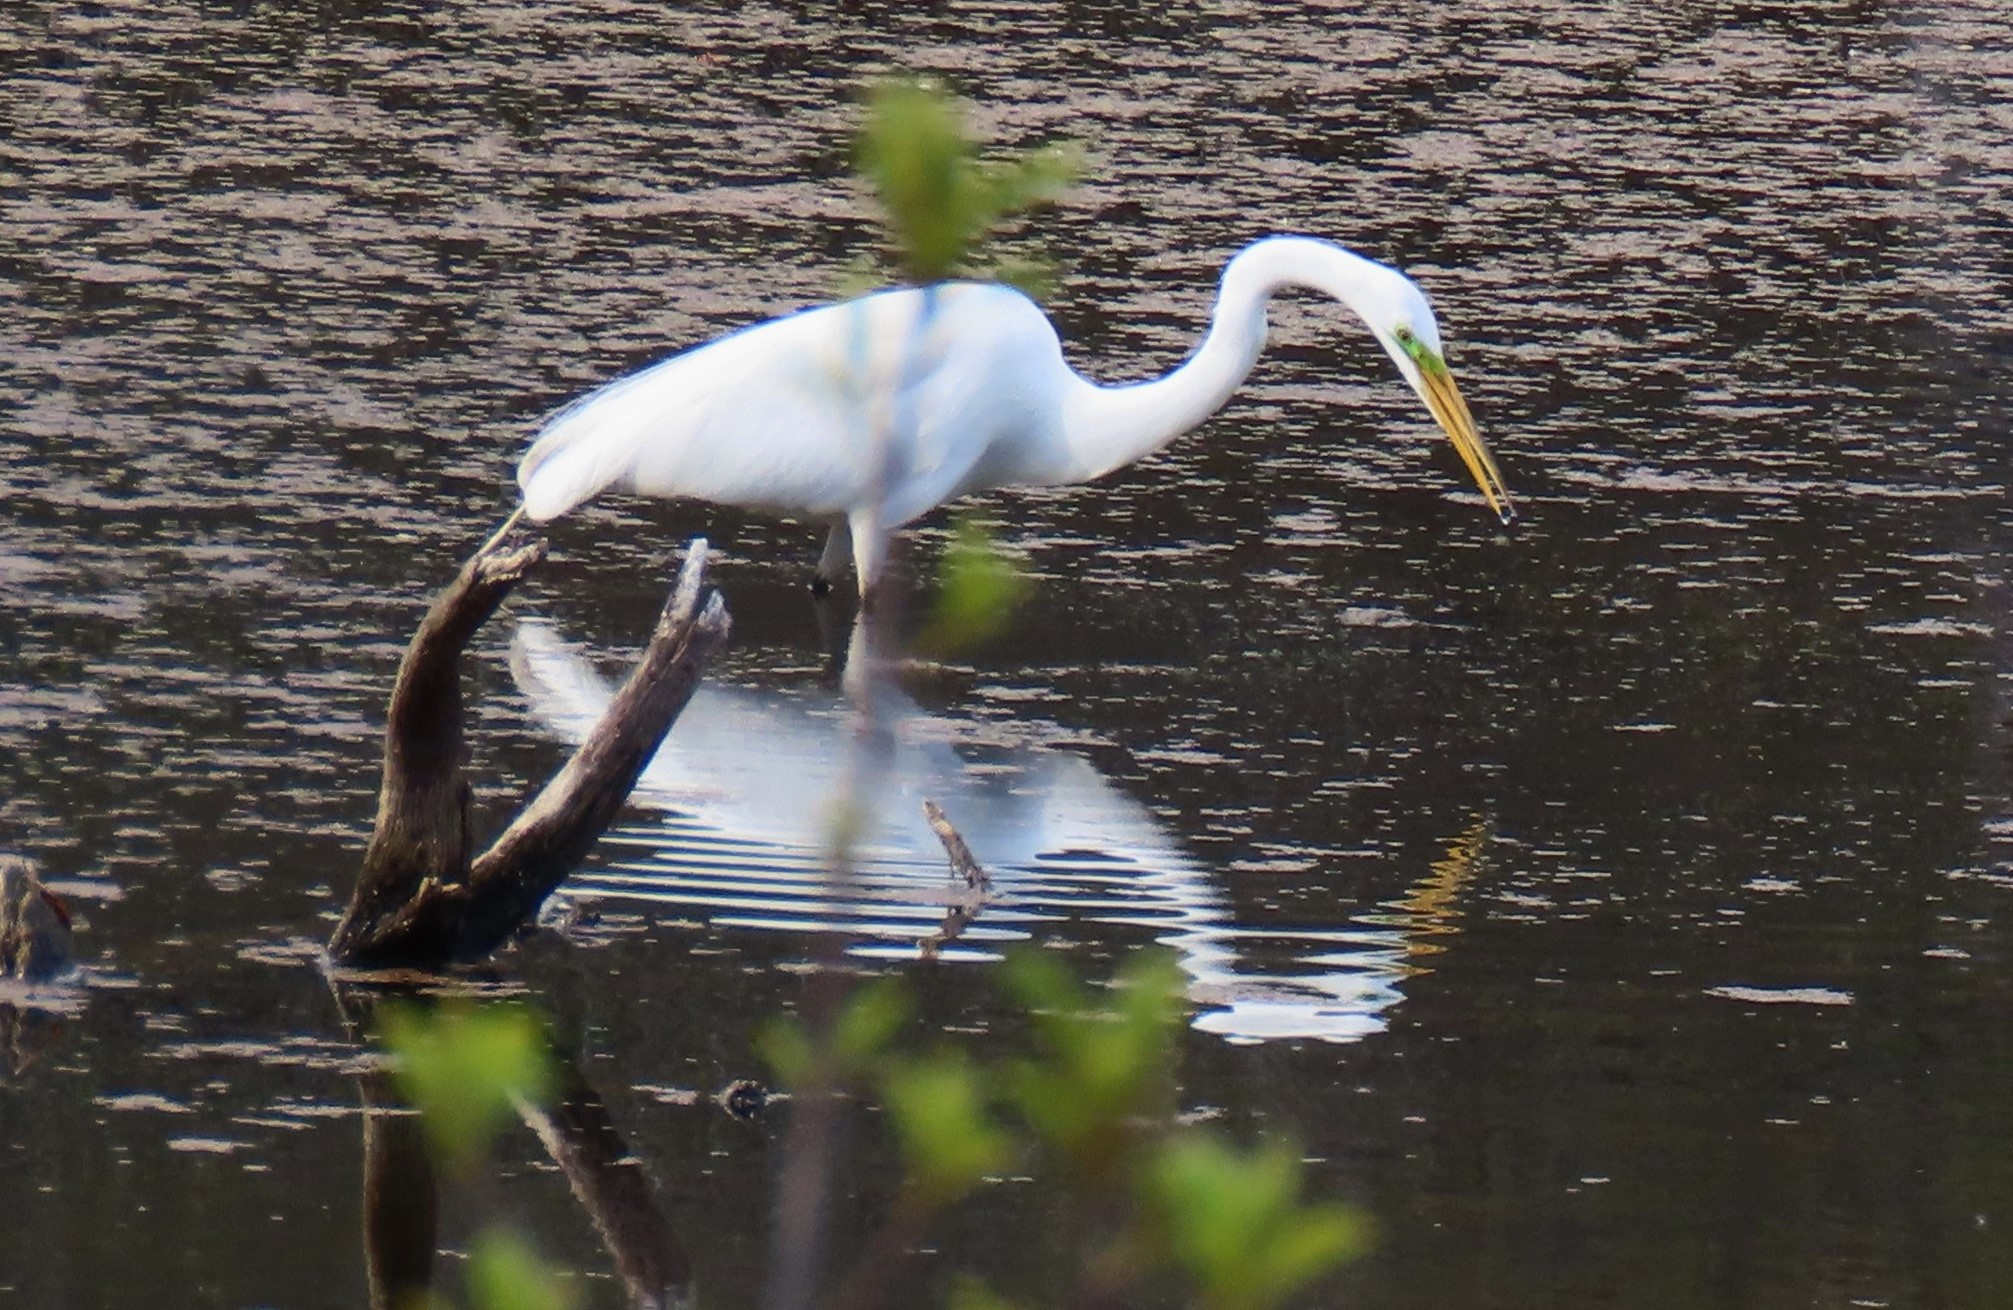 A Great Egret stabs its beak down into the water